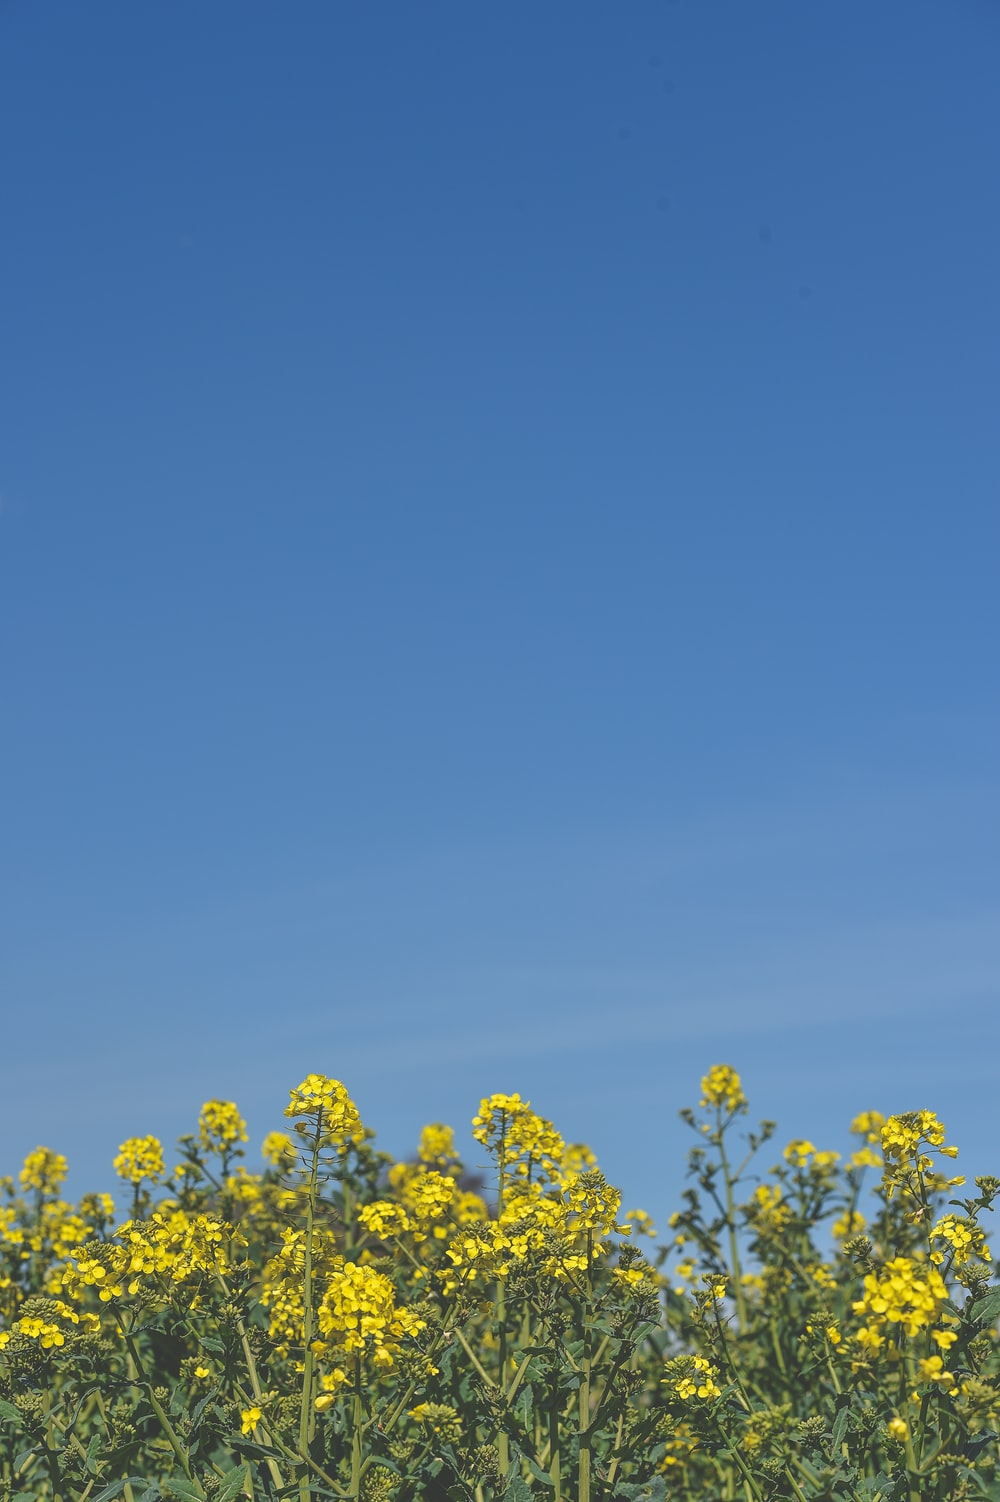 yellow petaled flowers under clear blue sky during daytime